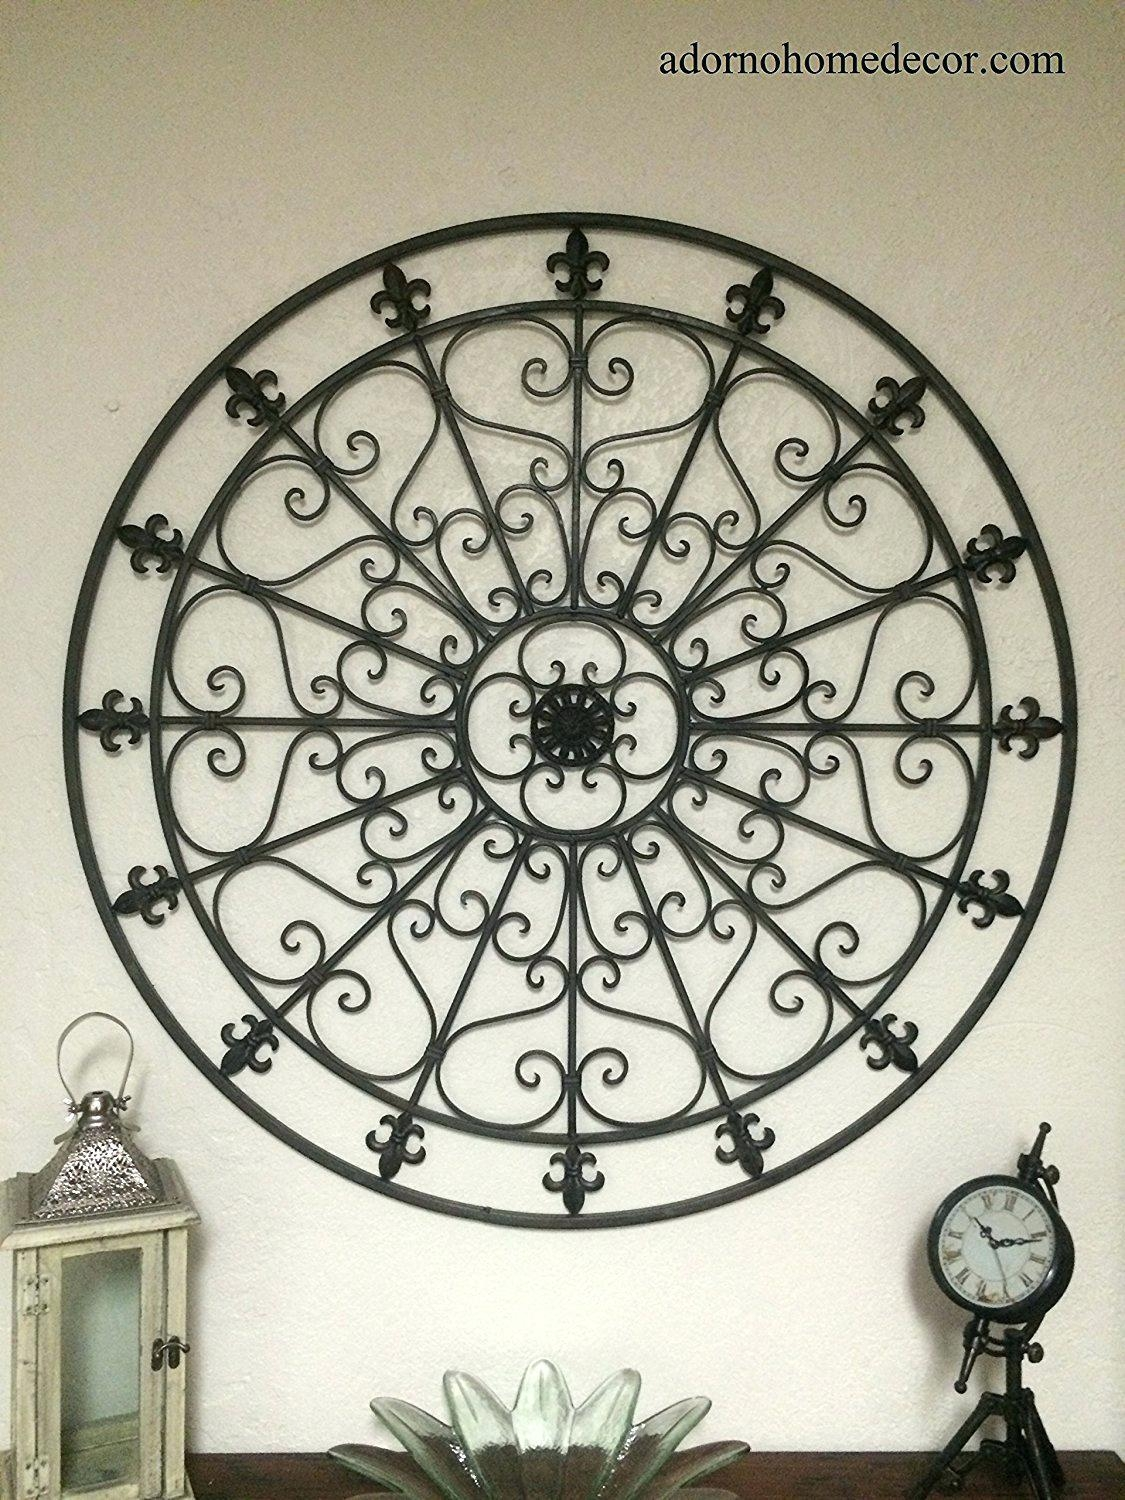 Wall Ideas : Iron Scroll Metal Wire Wall Medallion Hanging Art Throughout Large Round Metal Wall Art (Image 13 of 20)